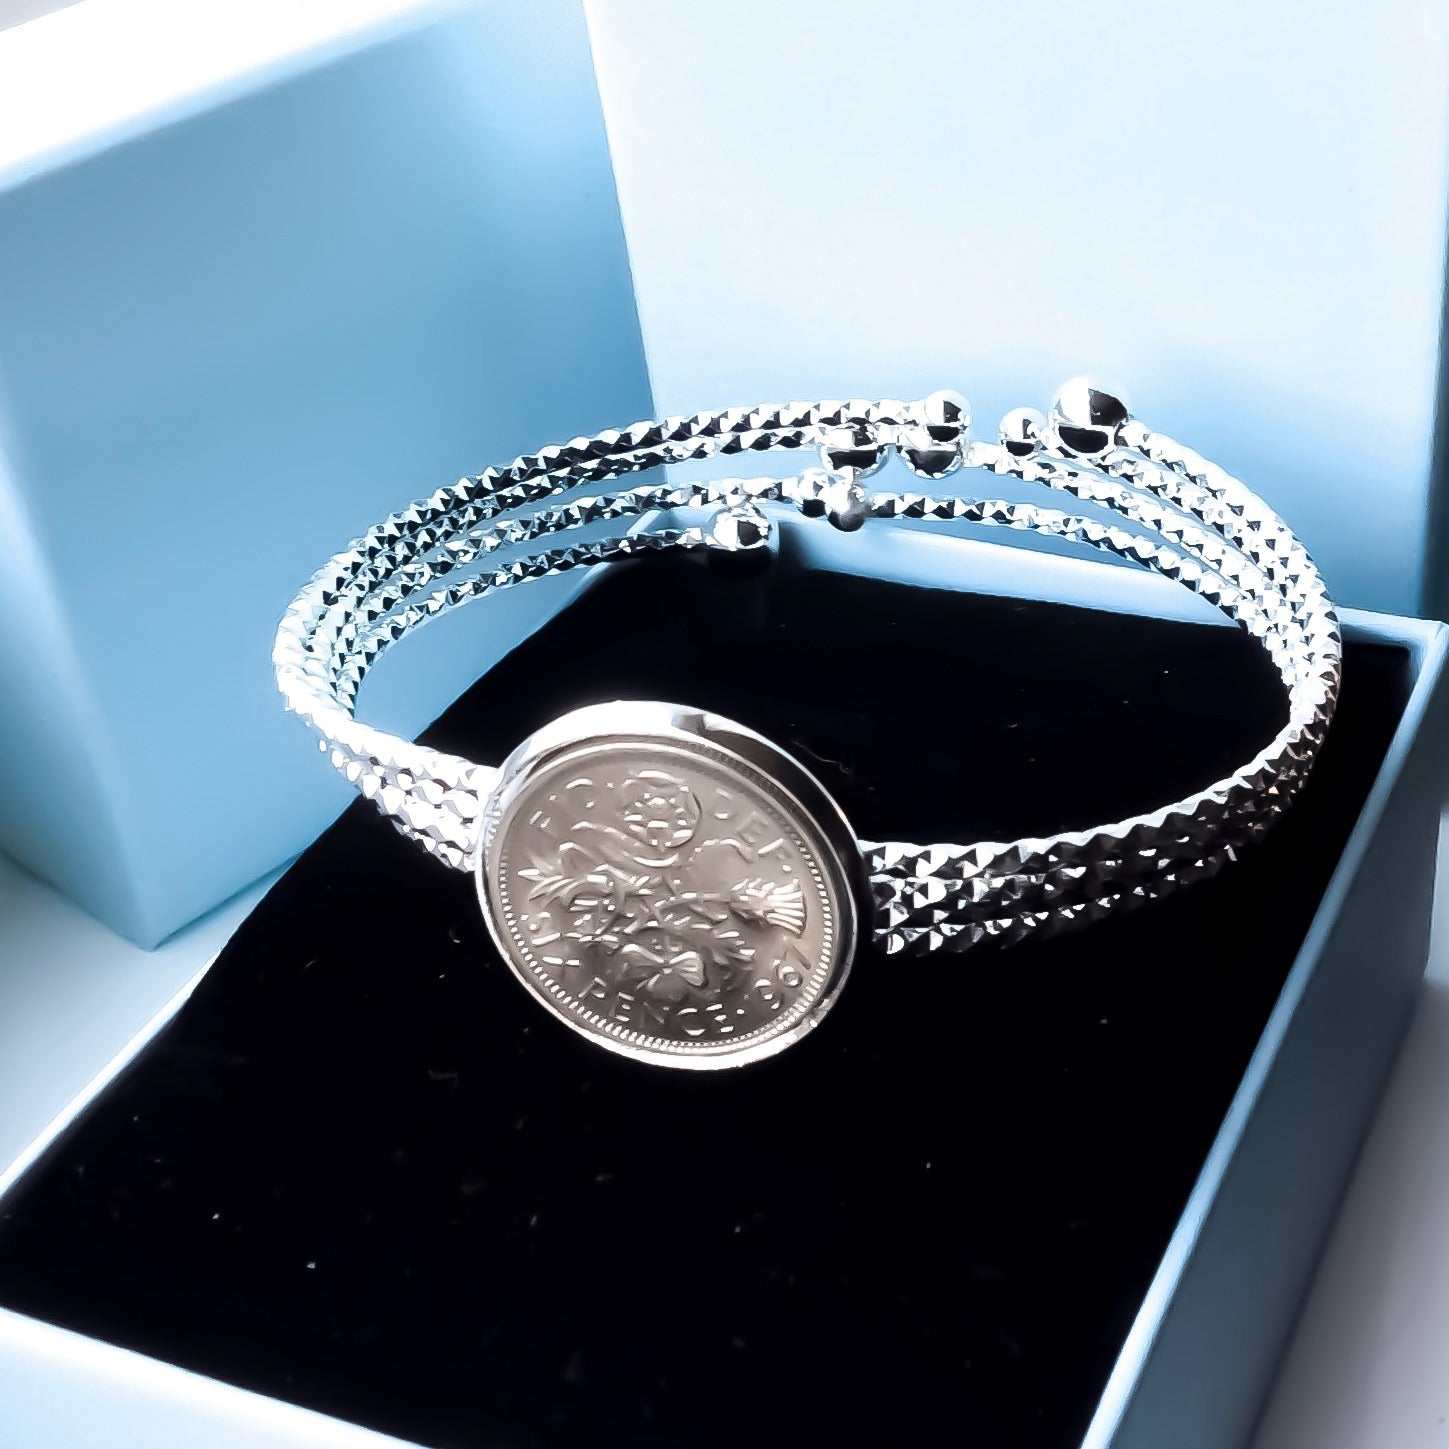 Comet Tail Lucky Sixpence British Coin Bracelet